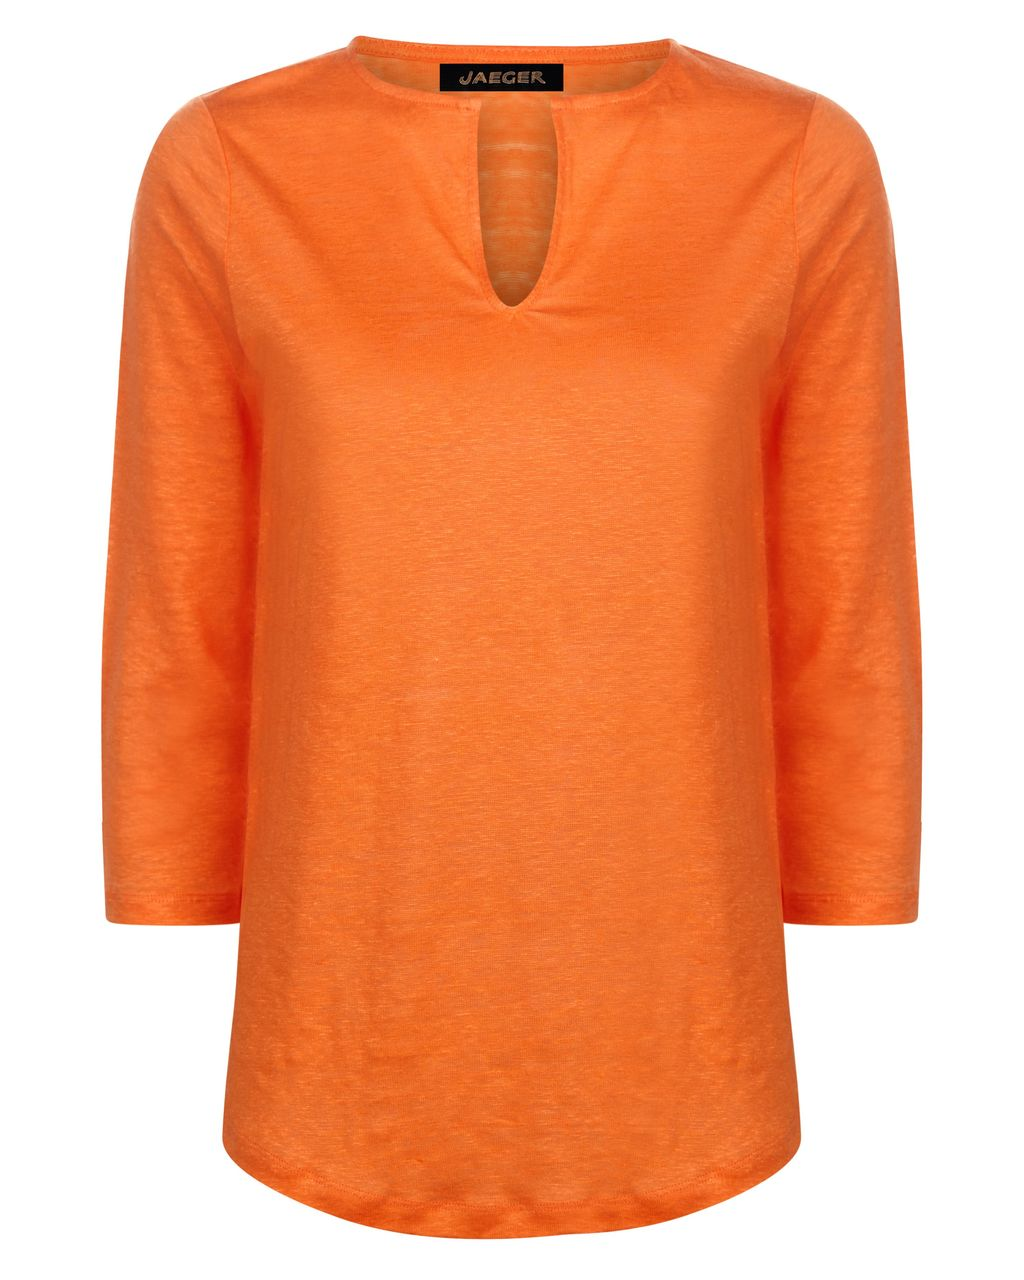 Linen Jersey T Shirt, Orange - pattern: plain; style: t-shirt; predominant colour: bright orange; occasions: casual, creative work; length: standard; neckline: collarstand & mandarin with v-neck; fibres: linen - 100%; fit: straight cut; sleeve length: 3/4 length; sleeve style: standard; pattern type: fabric; texture group: jersey - stretchy/drapey; season: s/s 2016; wardrobe: highlight